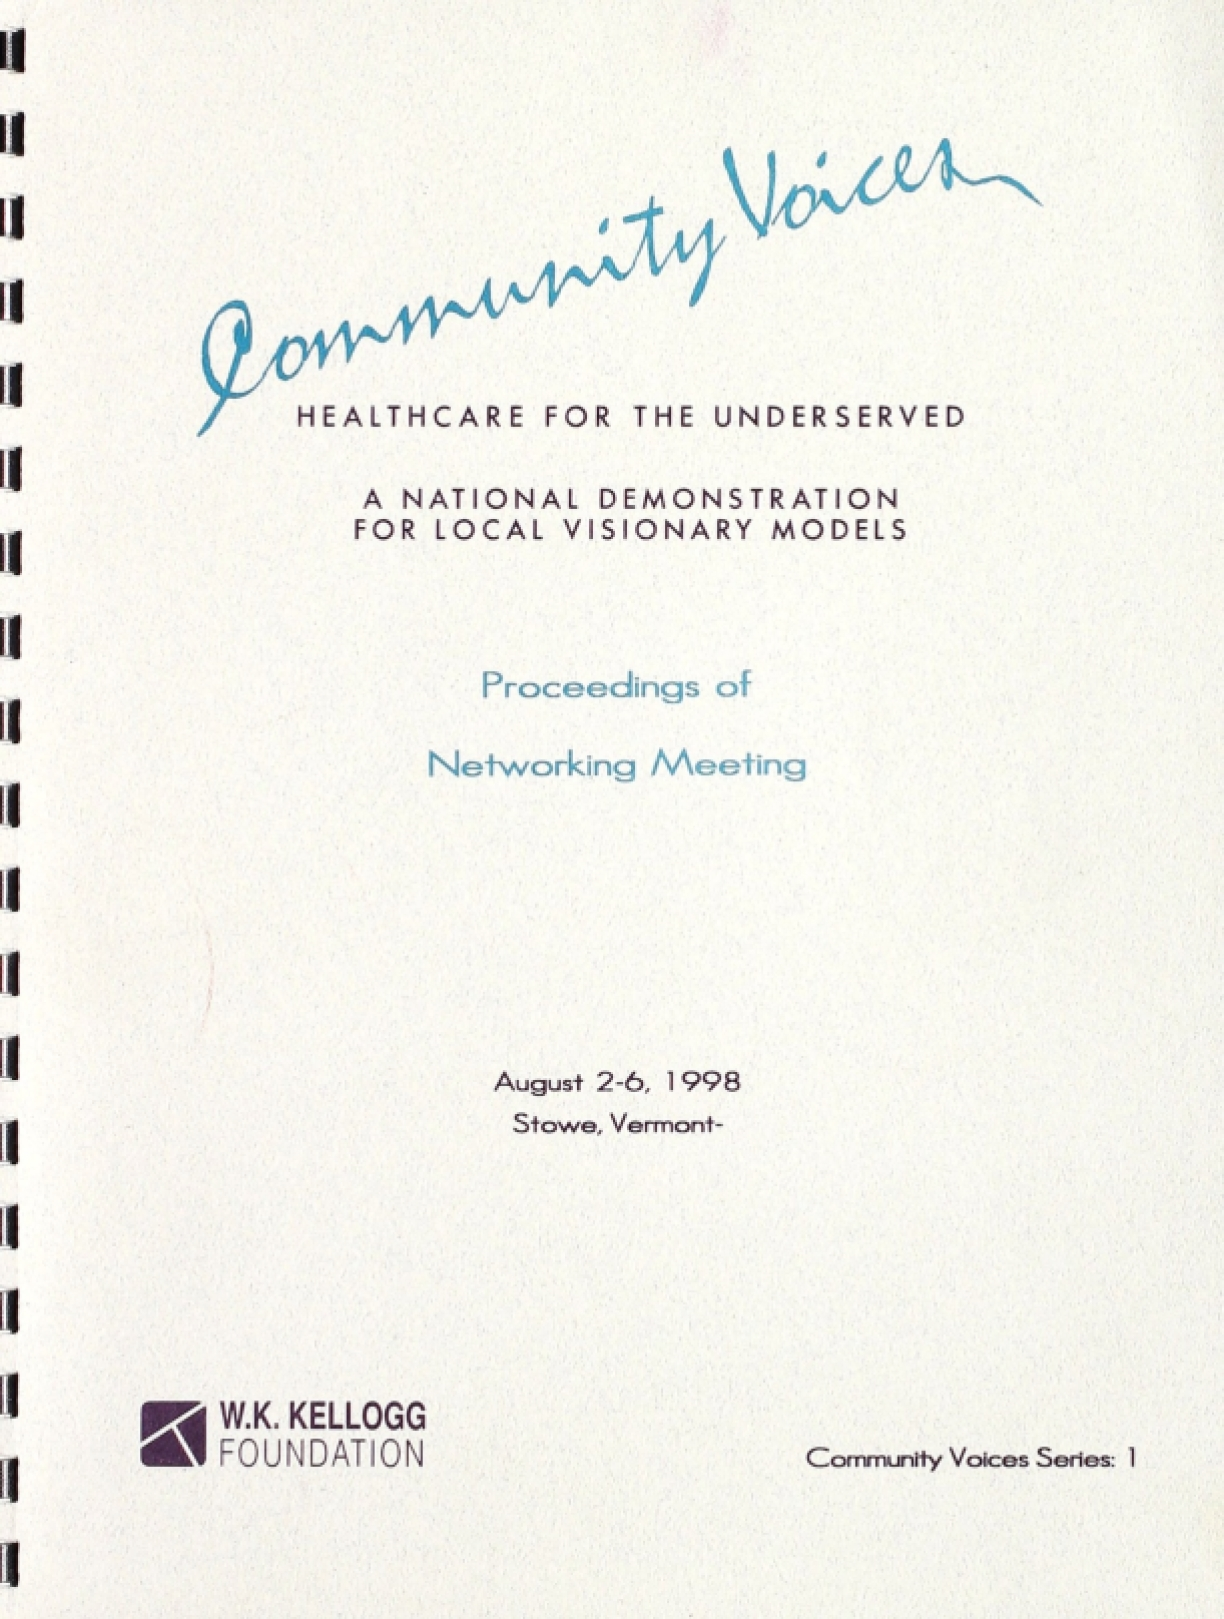 Community  Voices Healthcare for the Underserved: A National Demonstration for Local Visionary Models, Proceedings of Networking Meeting August 2-6, 1998